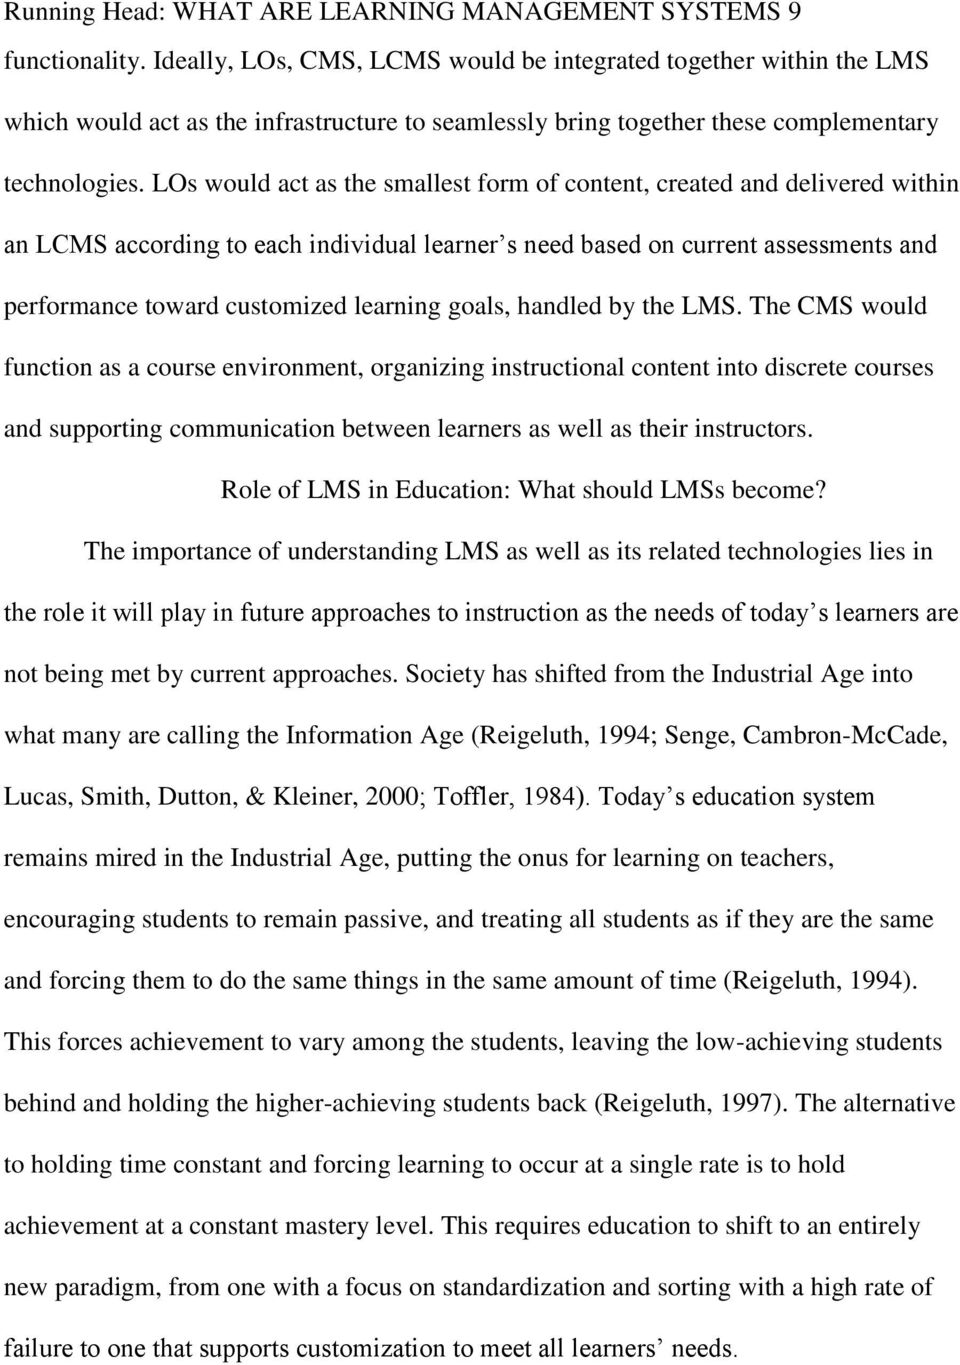 LOs would act as the smallest form of content, created and delivered within an LCMS according to each individual learner s need based on current assessments and performance toward customized learning